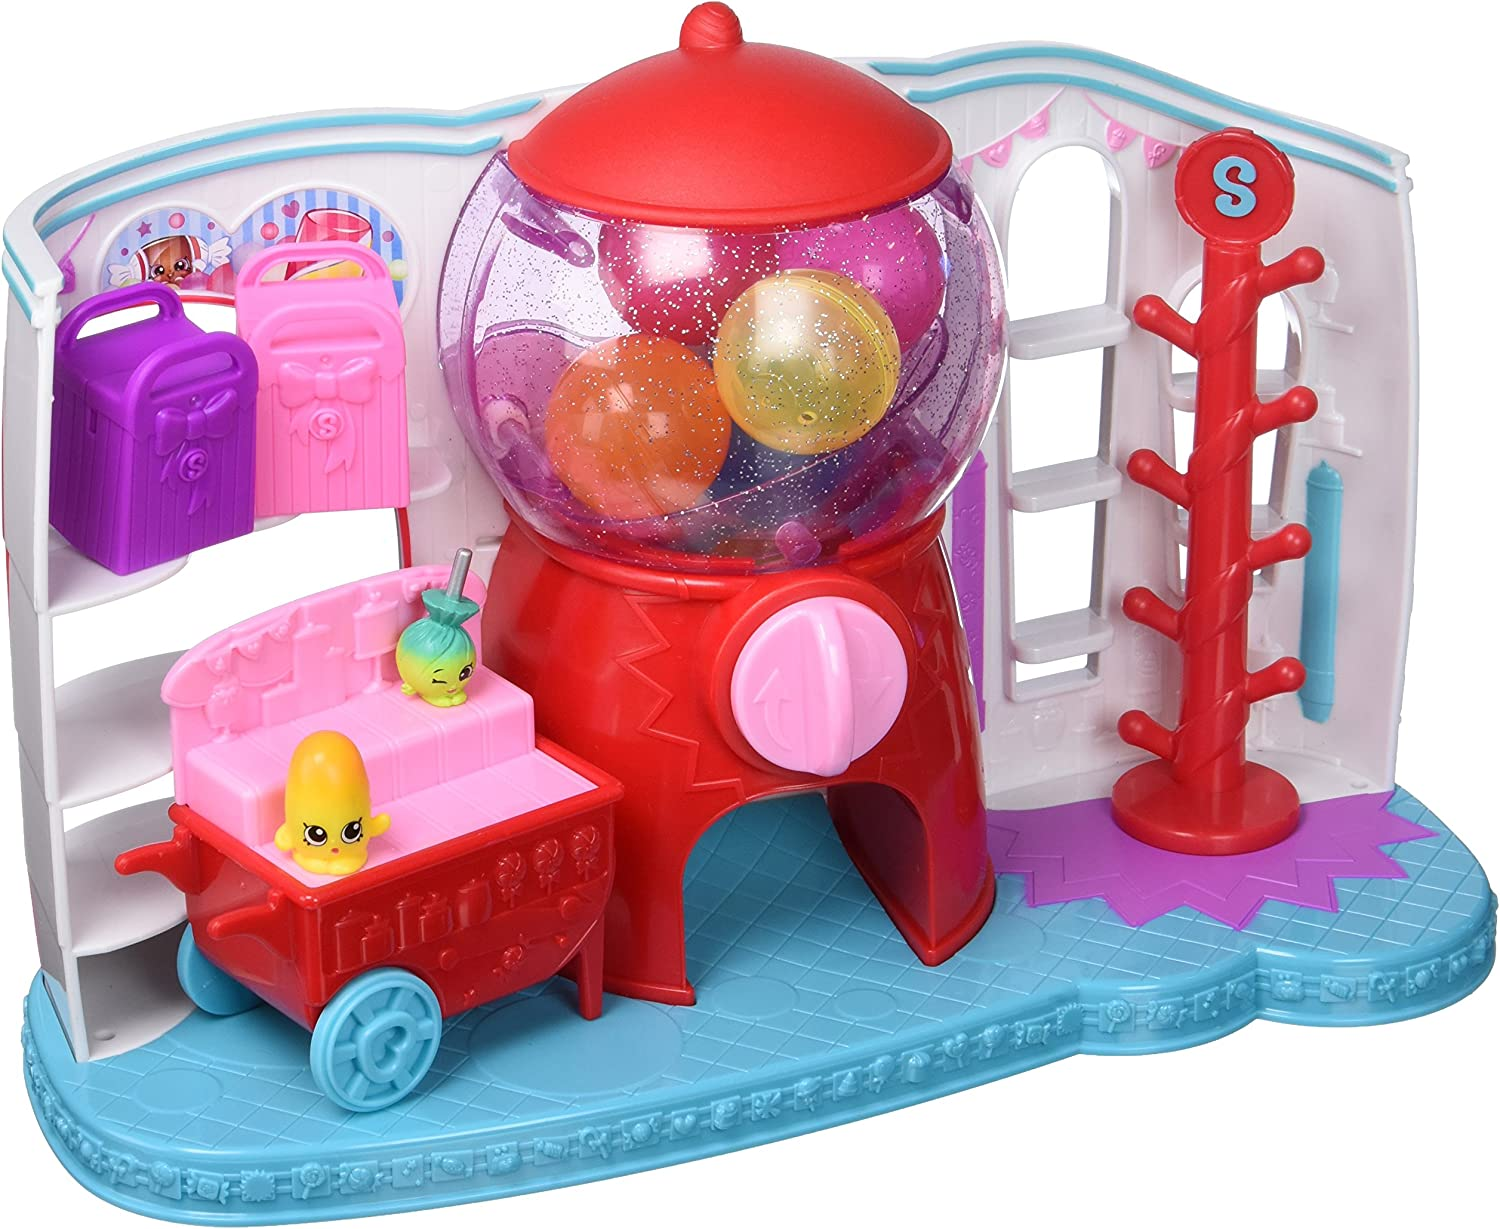 Top 12 Best Shopkins Toys (2020 Reviews & Buying Guide) 7